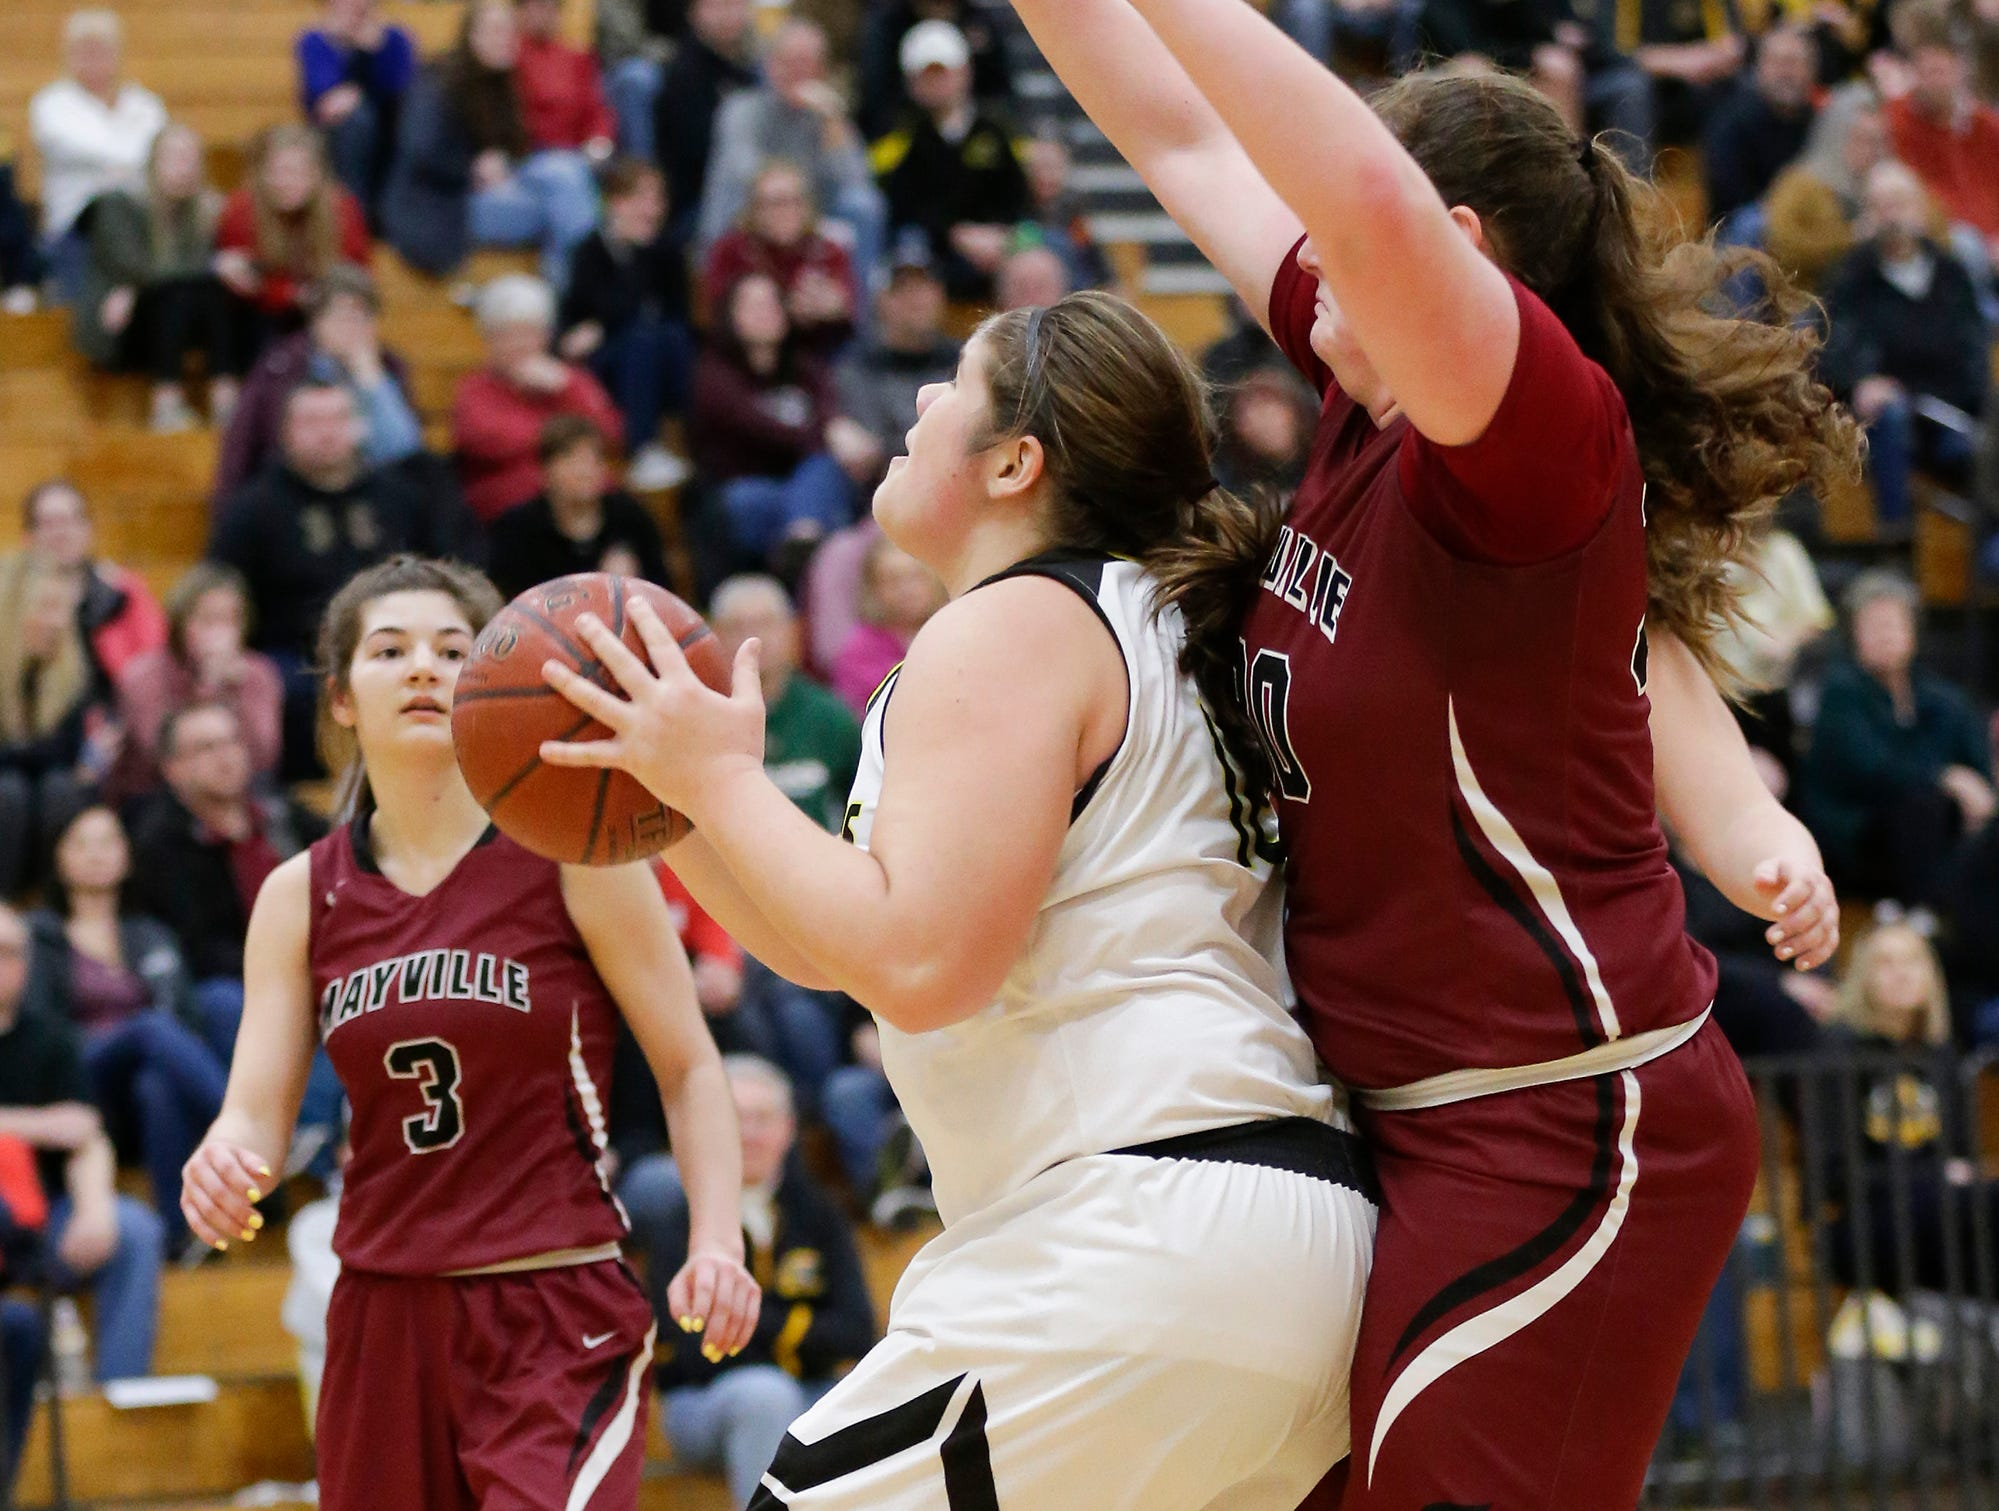 Waupun High School girls basketball's Kelli Bonack (12) eyes up a shot while being defended by Mayville High School's Sydney Schultz (30) Saturday, February 23, 2019 during their WIAA Division 4 sectional quarterfinal game in Waupun. Waupun won the game 62-45. Doug Raflik/USA TODAY NETWORK-Wisconsin